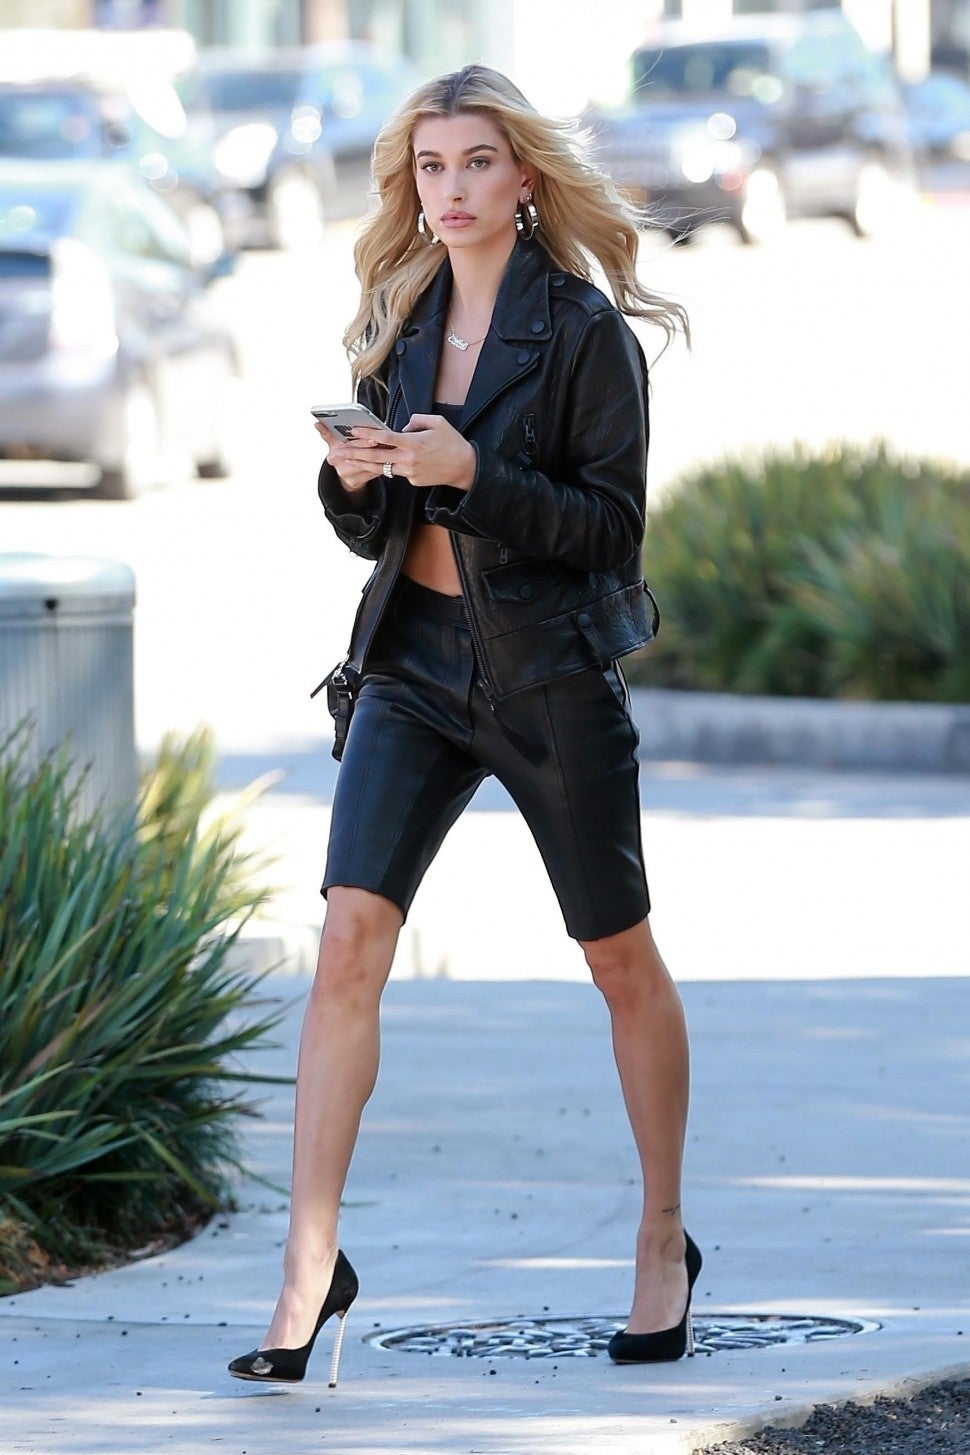 Hailey Baldwin in leather outfit